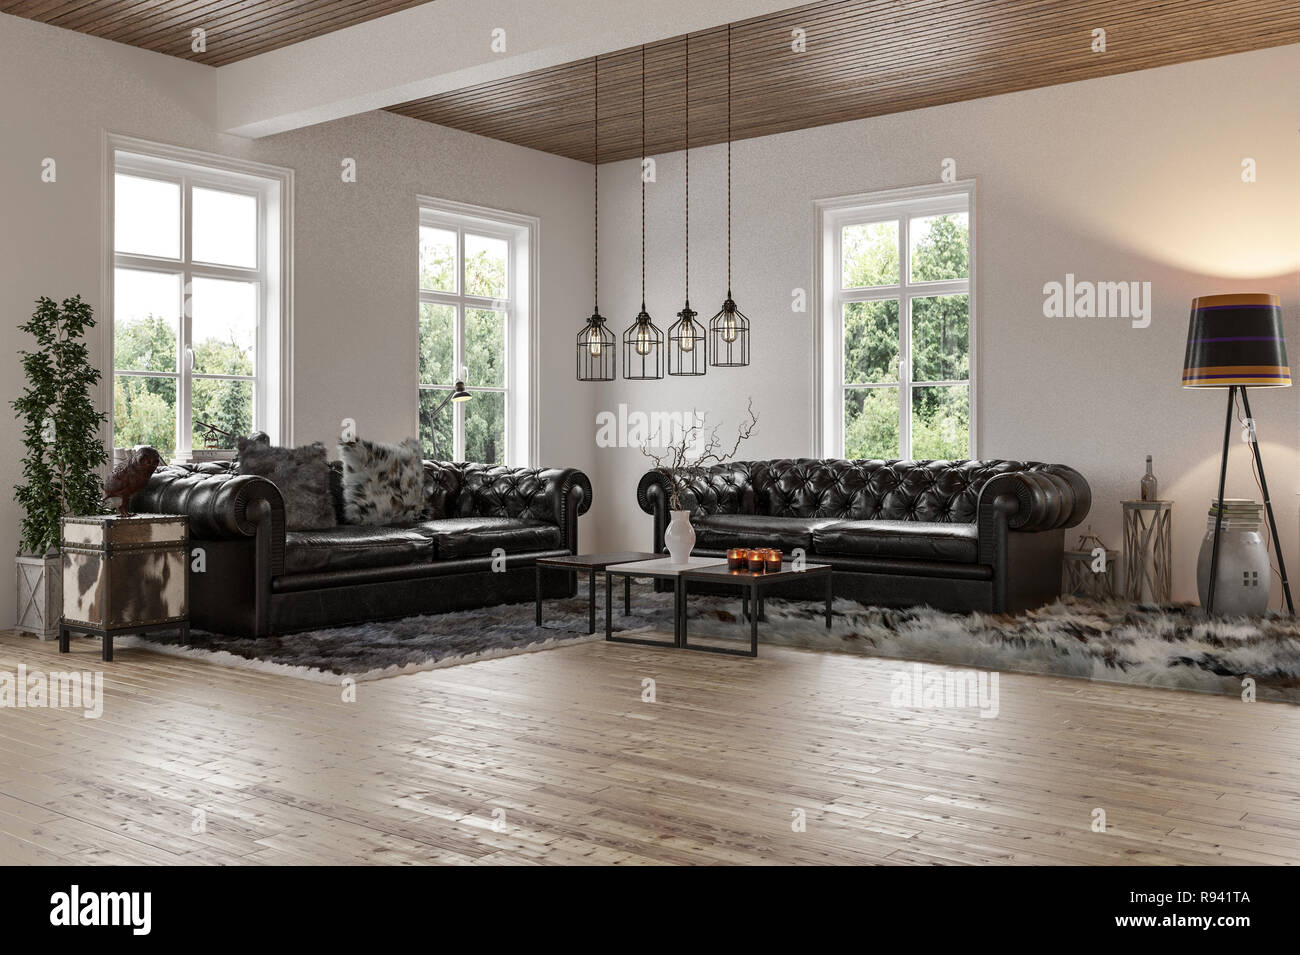 Interior Design Of The Room With Two Black Leather Couches Wooden Floor And Ceiling White Walls With Big Windows And Fur Carpets On The Floor Stock Photo Alamy